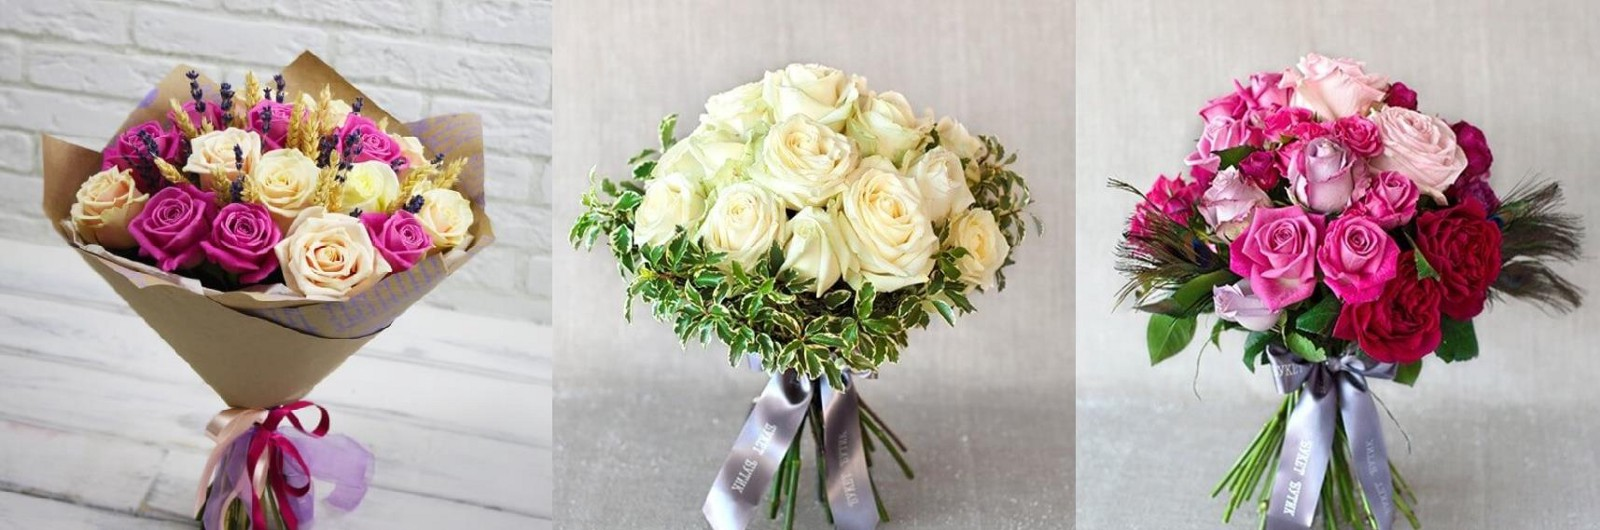 How to choose a bouquet for your business partner flowwow medium the flower box could be another interesting thing as a gift they look stylish and officially what is important the recipient does not have to look for a izmirmasajfo